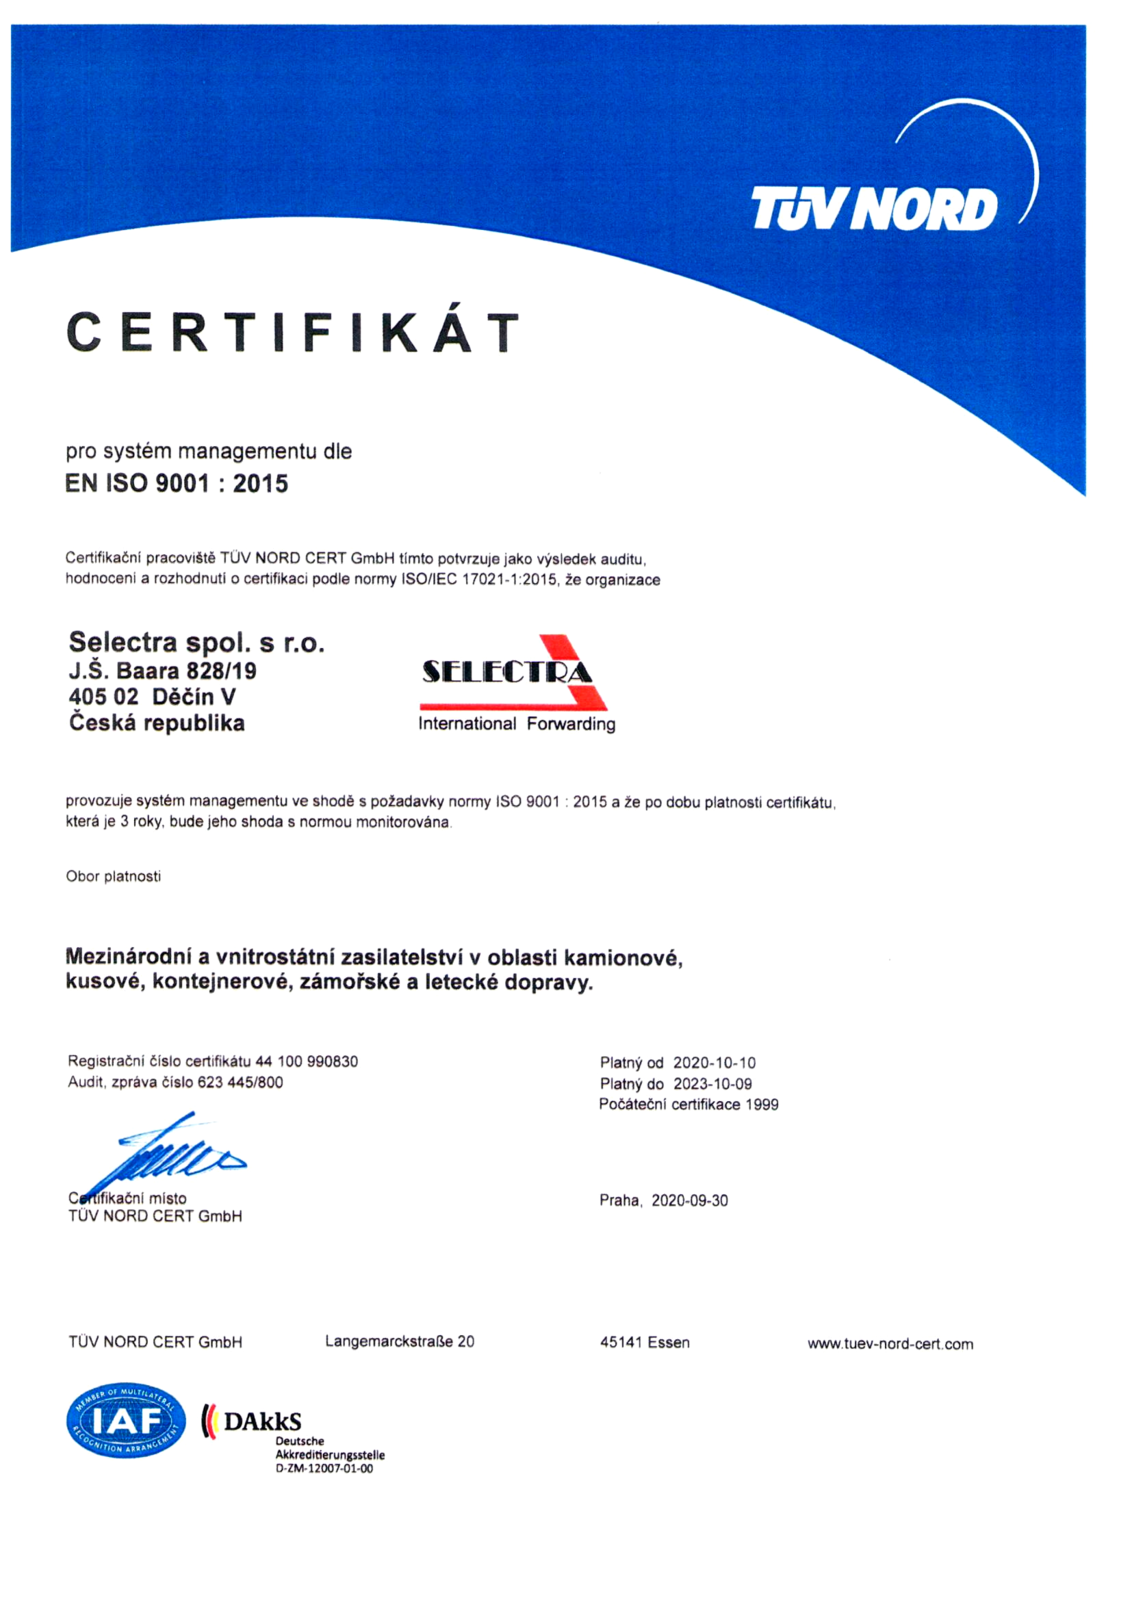 ISO Certifikát 20201010 CZ.png